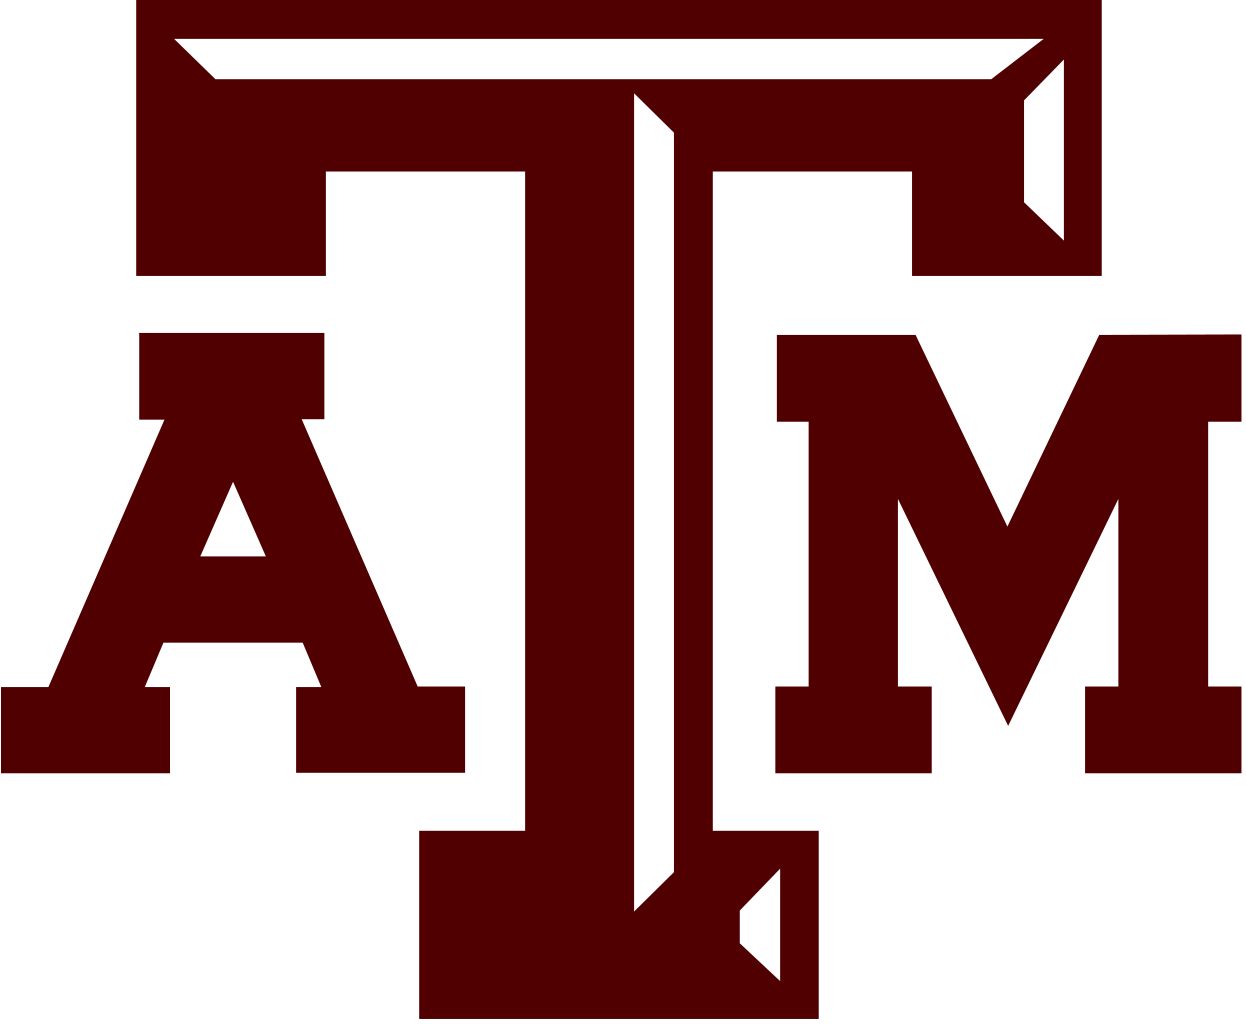 vector royalty free texas a&m clipart #67868402